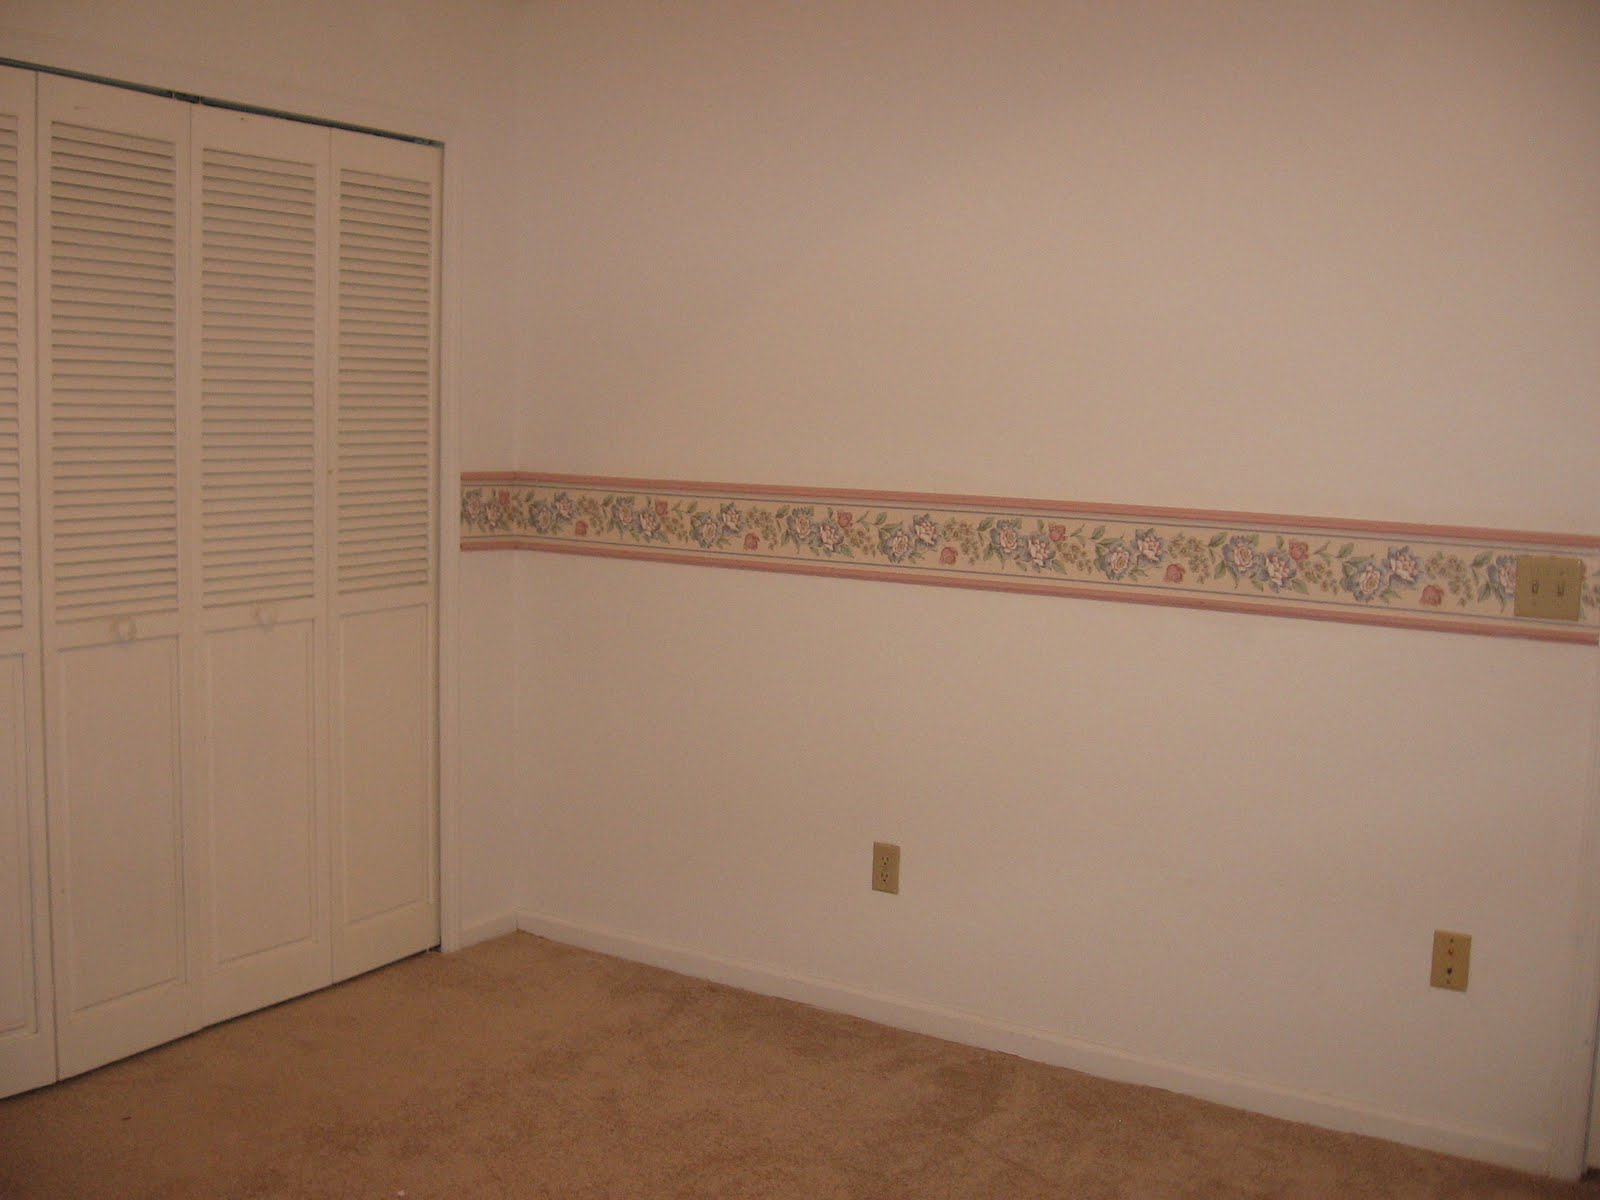 Cherry wood crown molding wallpaper border janet2B2 1600x1200